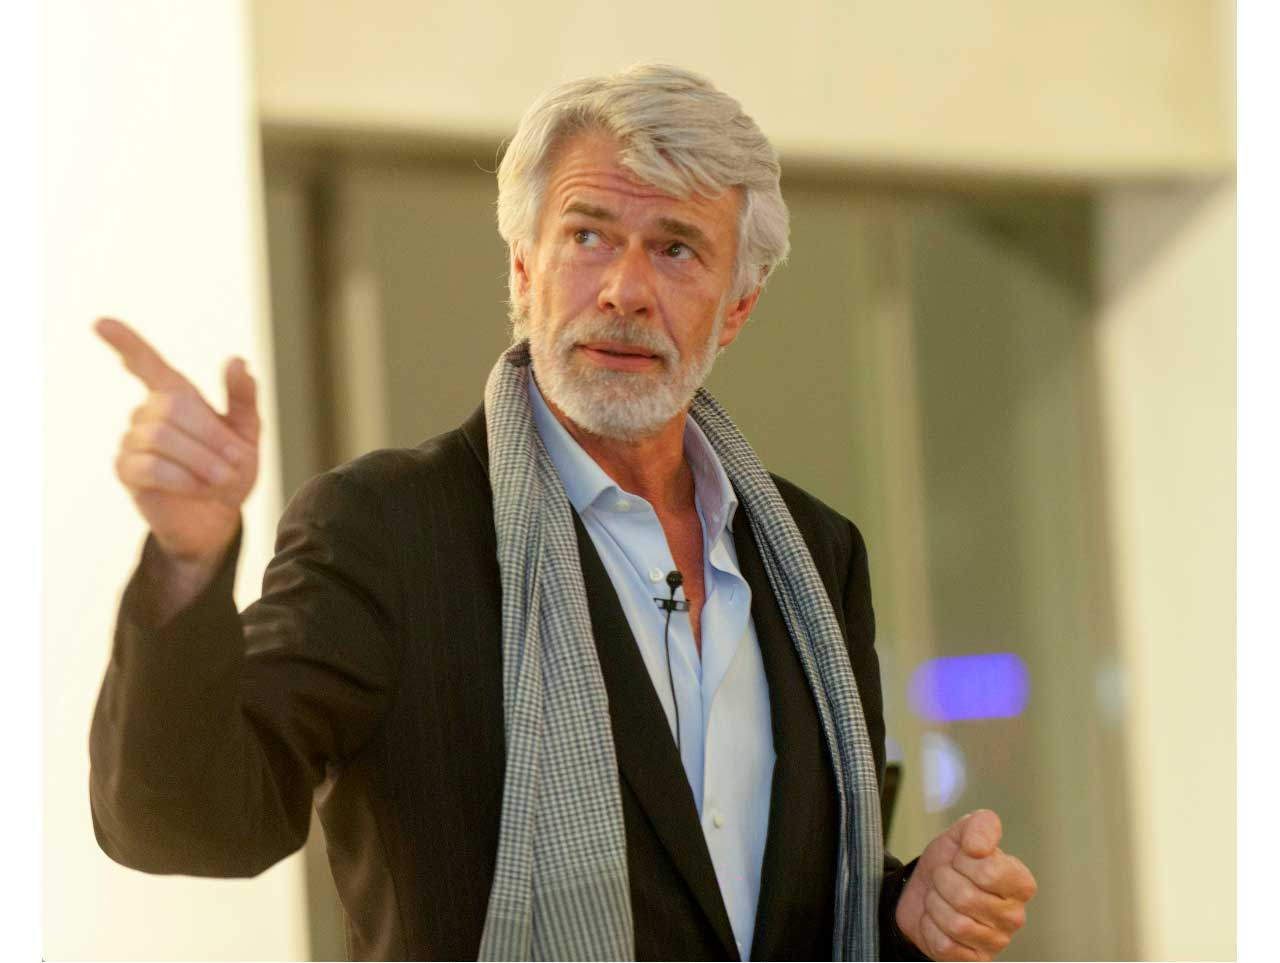 Chris Dercon speaking at Istanbul Modern Art Museum in 2015